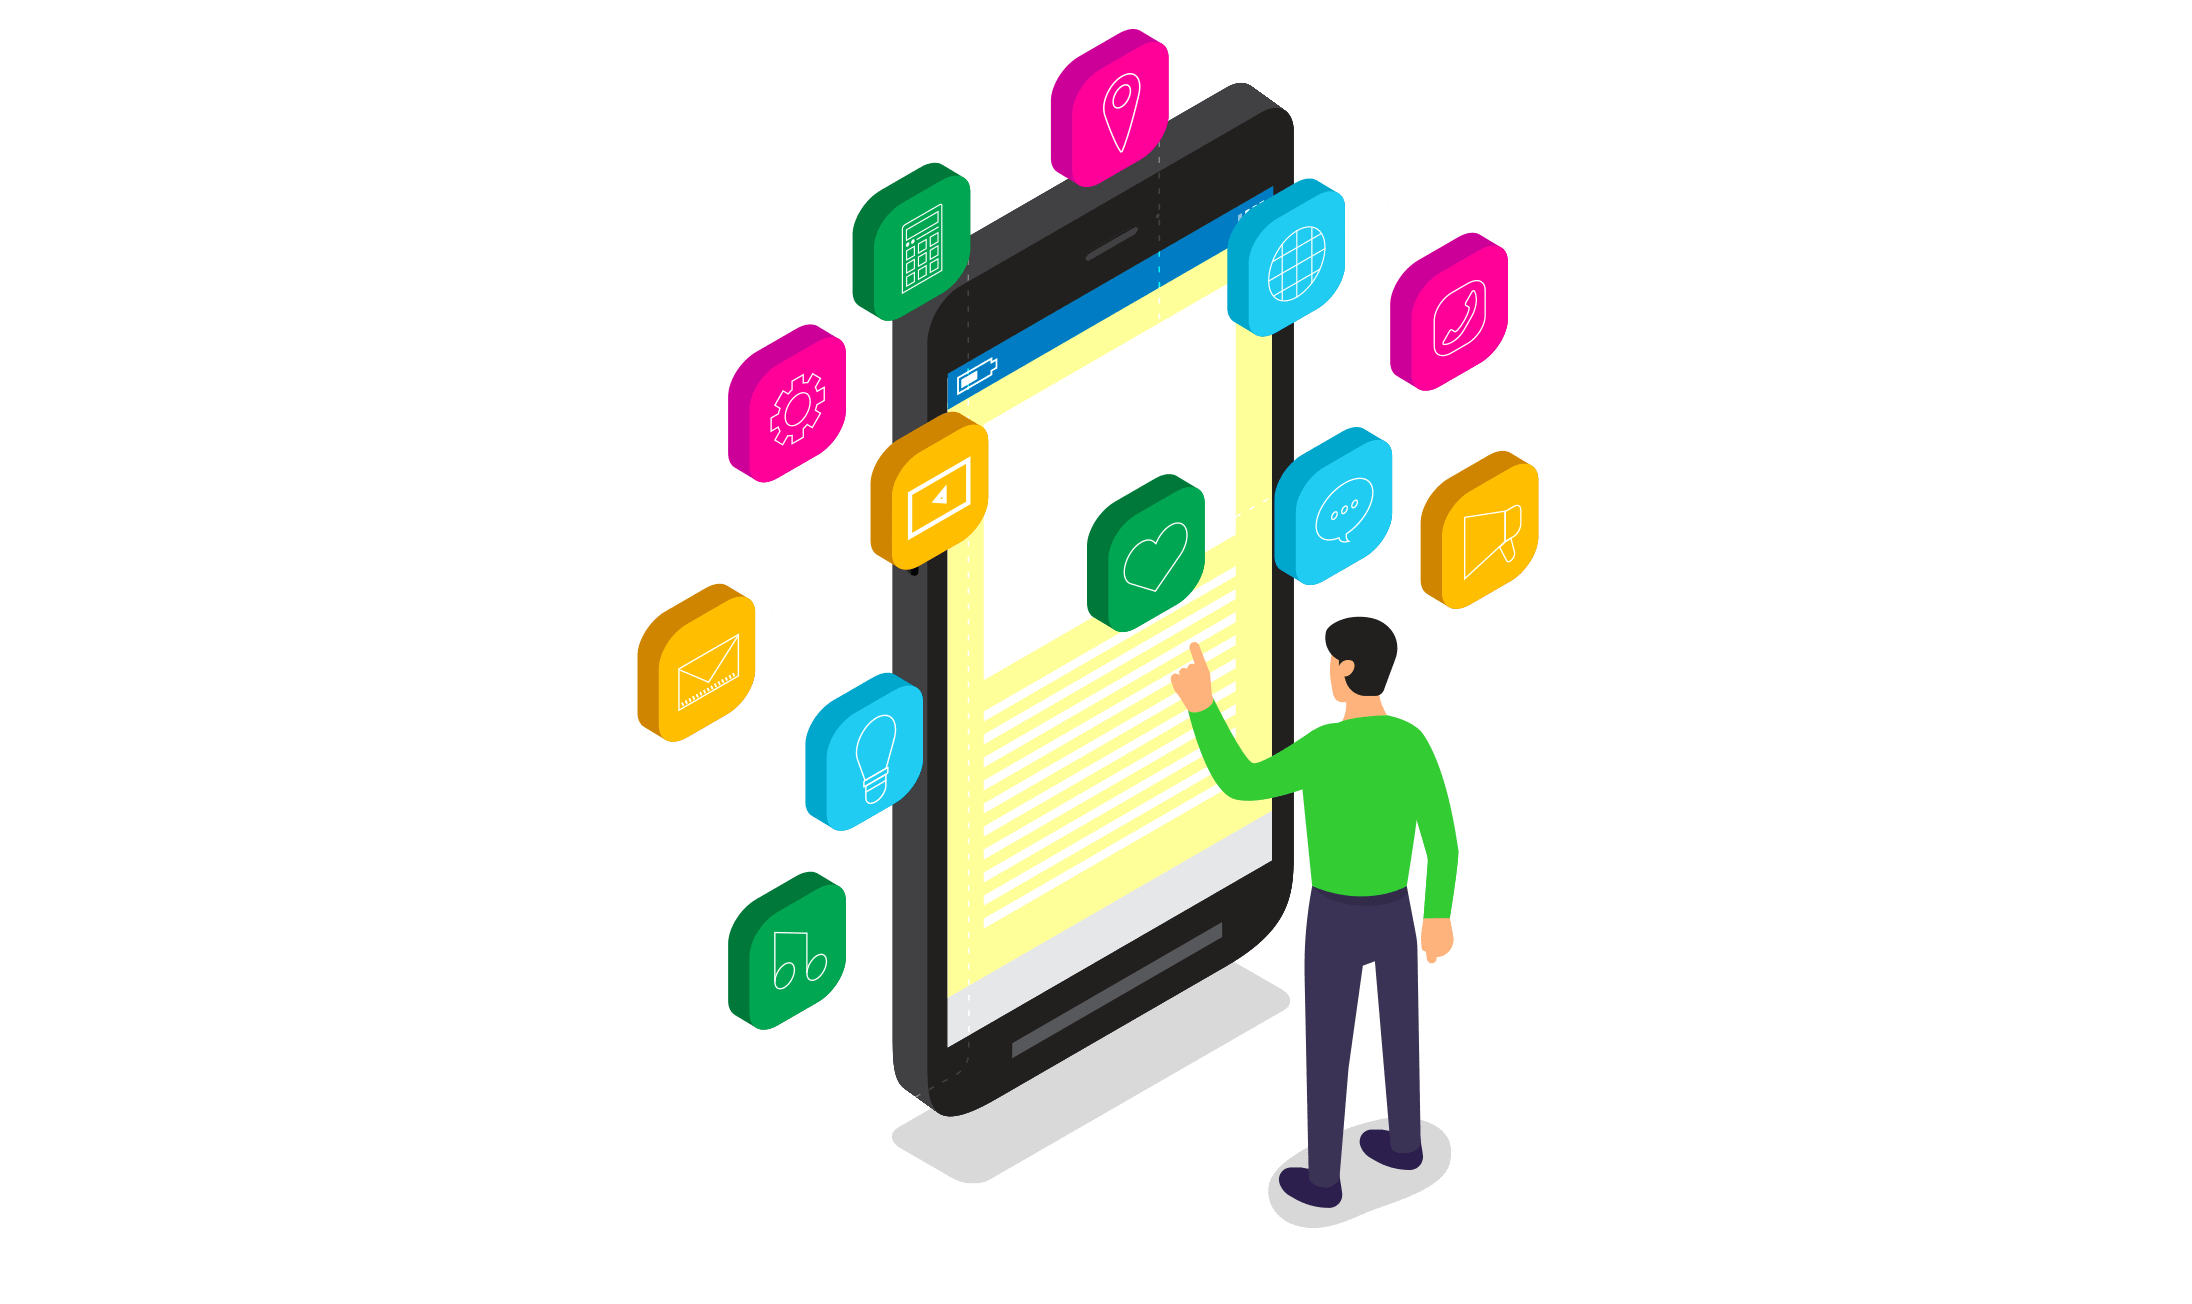 Manage Saved Apps on Work Phones & - Monitor Apps Installed on Company-Owned Devices